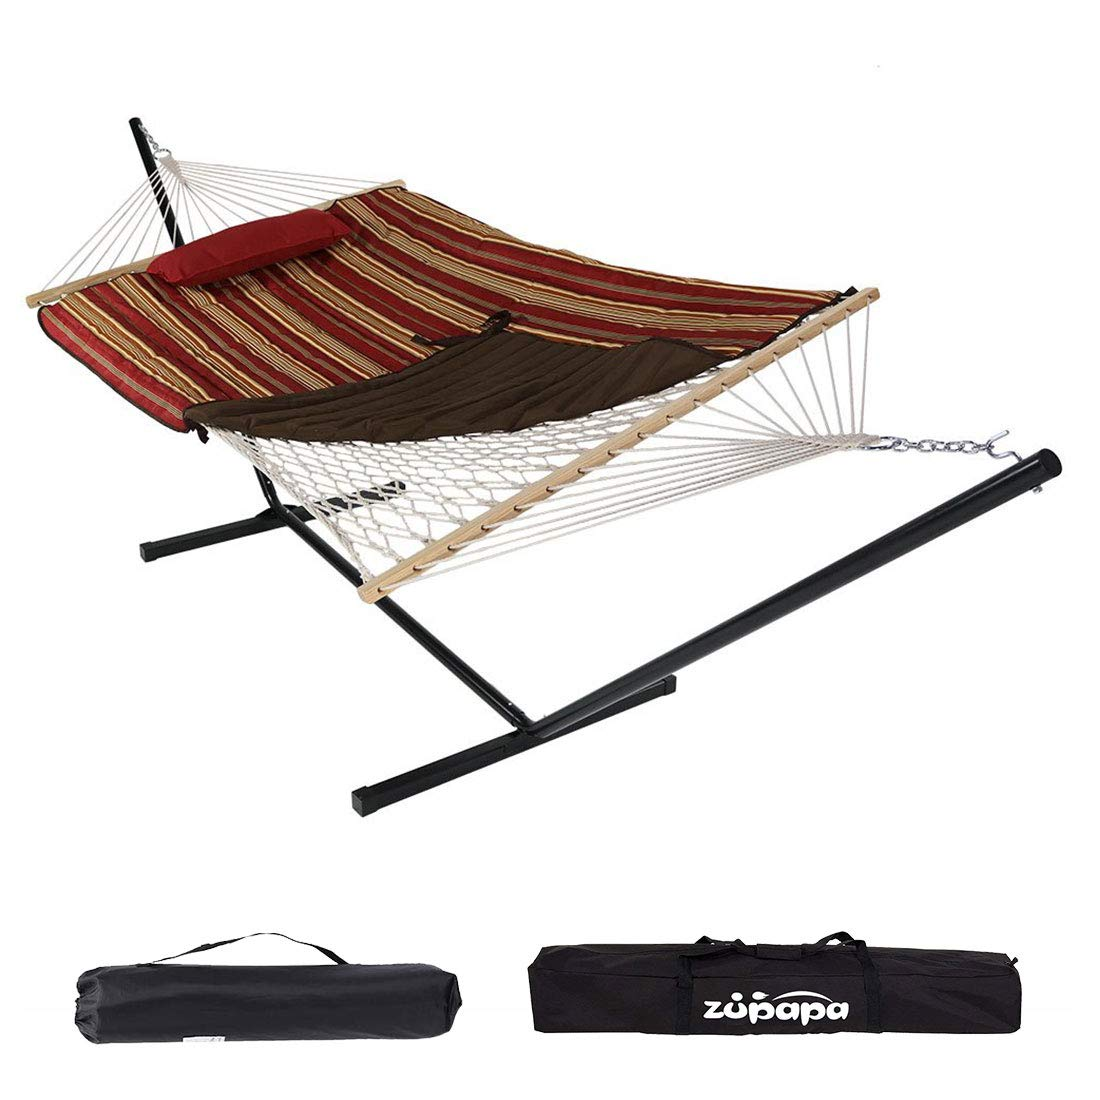 Zupapa Cotton Rope Hammock with Stand 400lbs Capacity, Indoor Outdoor Use 12 Ft Hammock Stand Spreader Bar Hammock Pad and Pillow 2 Storage Bags Included